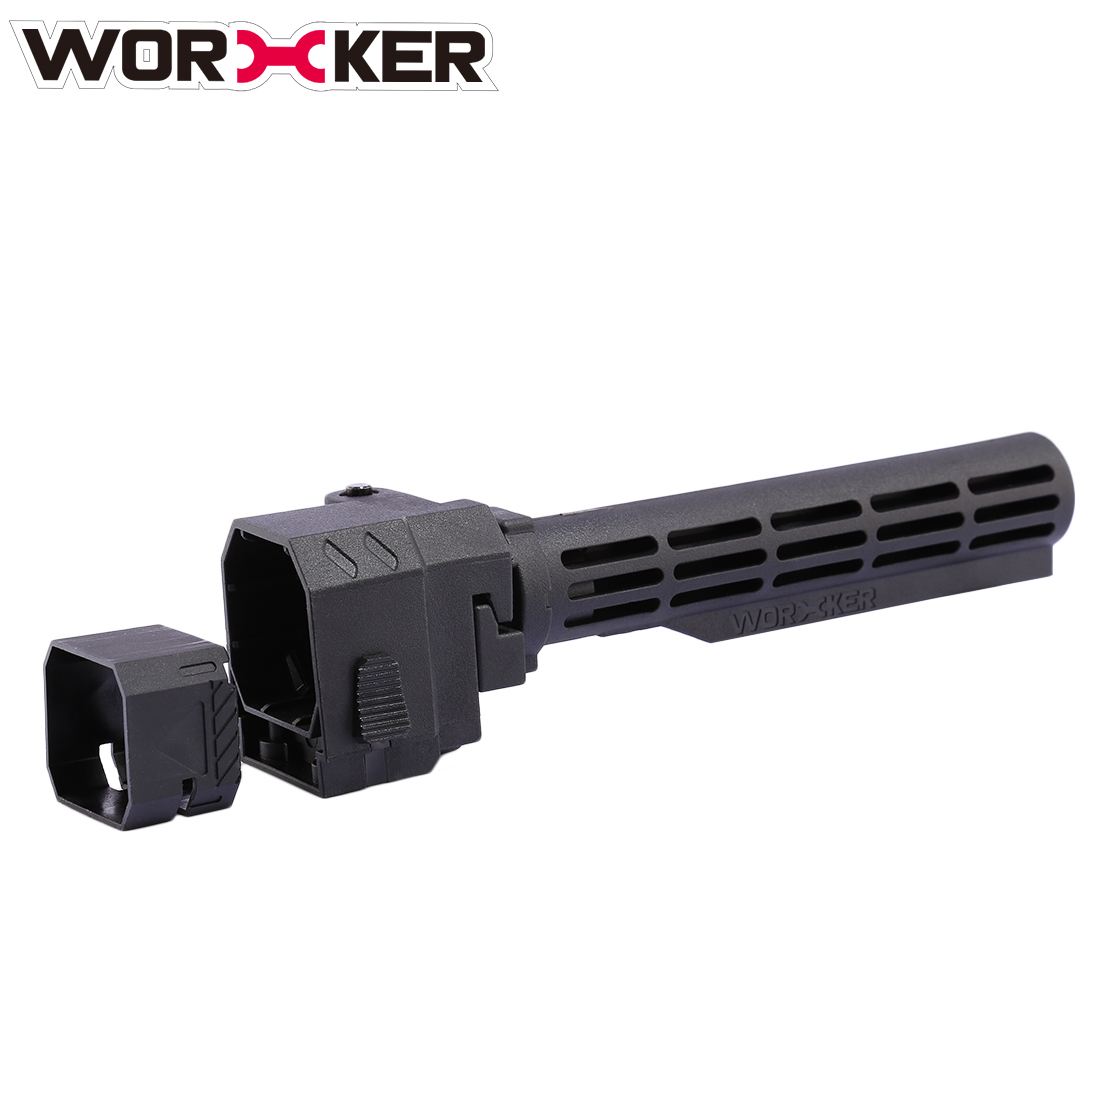 Worker Folding Shoulder Stock Core Parts Set For Nerf N Usb Power Supply With Lm2575 Hqewnet Incarcat De Accesari 1109 Data 301010 Marime 51 Mb Browserul Tau Nu Suporta Html5